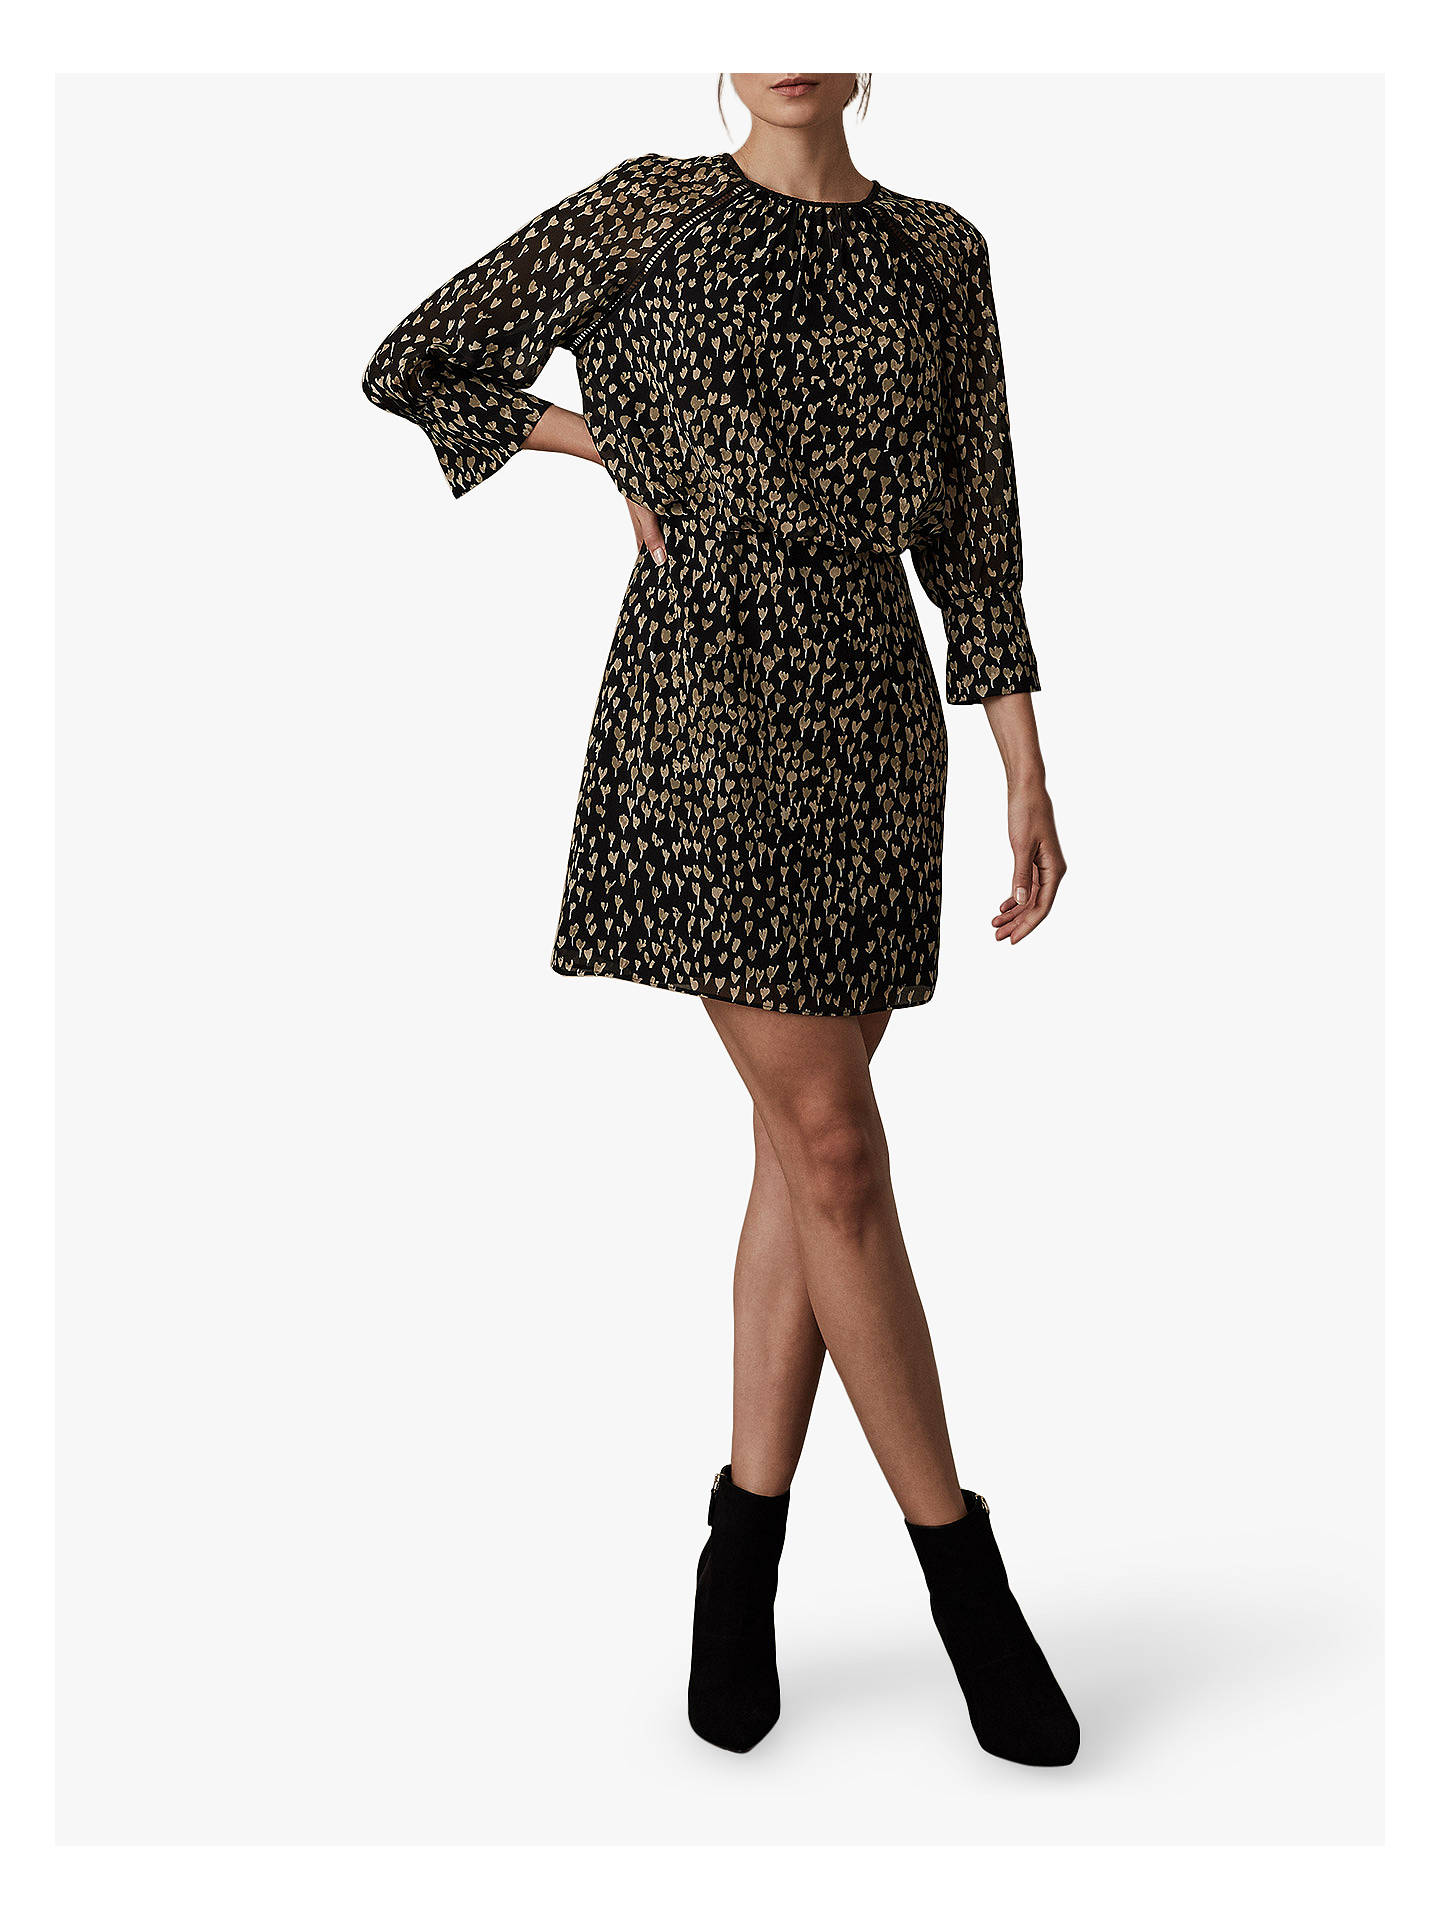 BuyReiss Melania Ditsy Printed Mini Dress, Multi, 6 Online at johnlewis.com